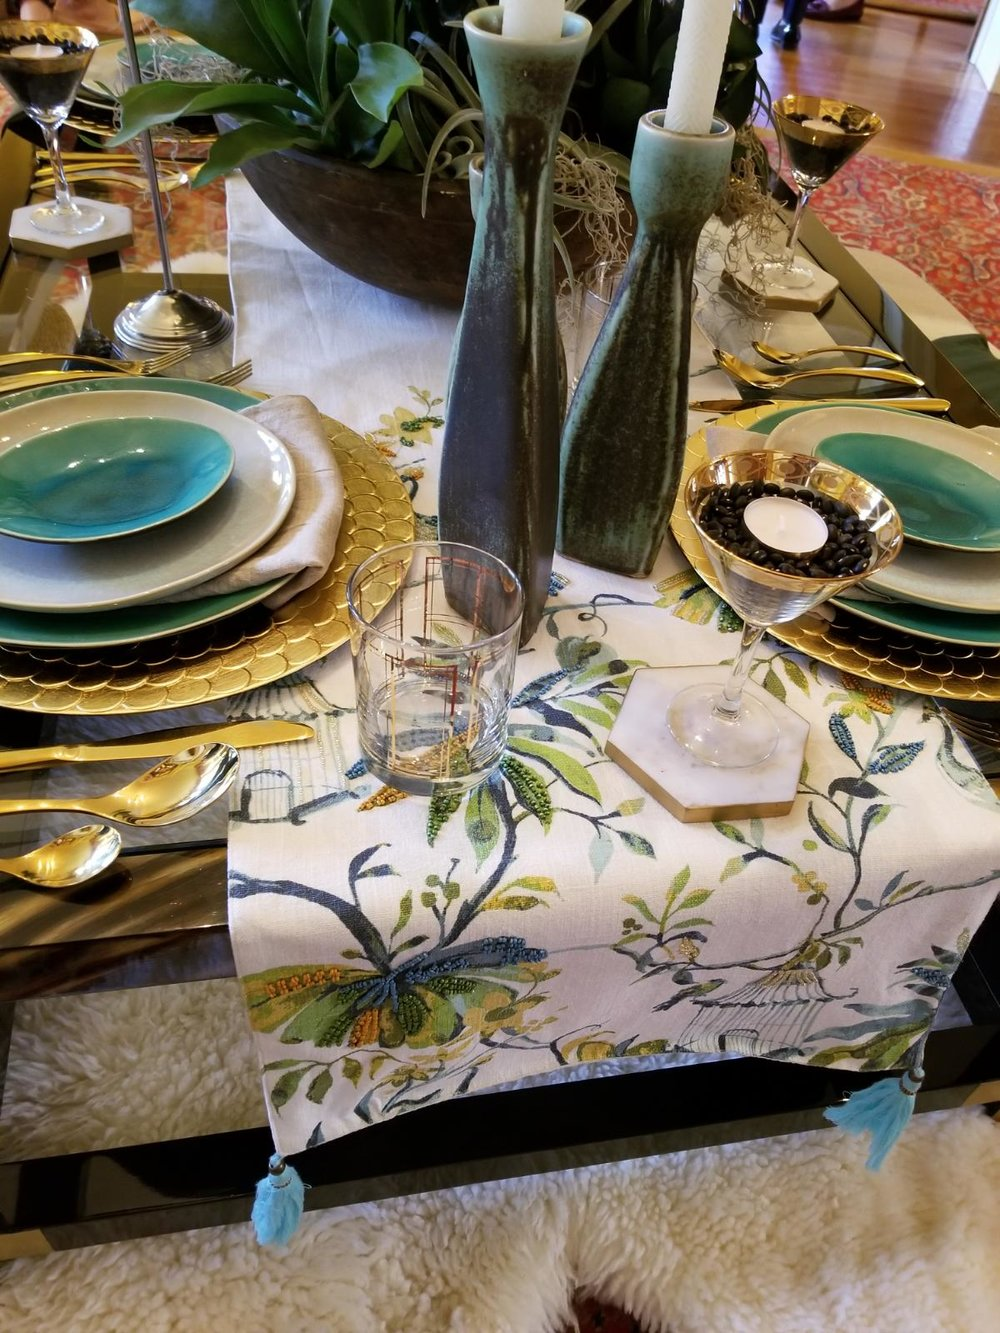 This year's Set to Celebrate table presented by Moreau Designs